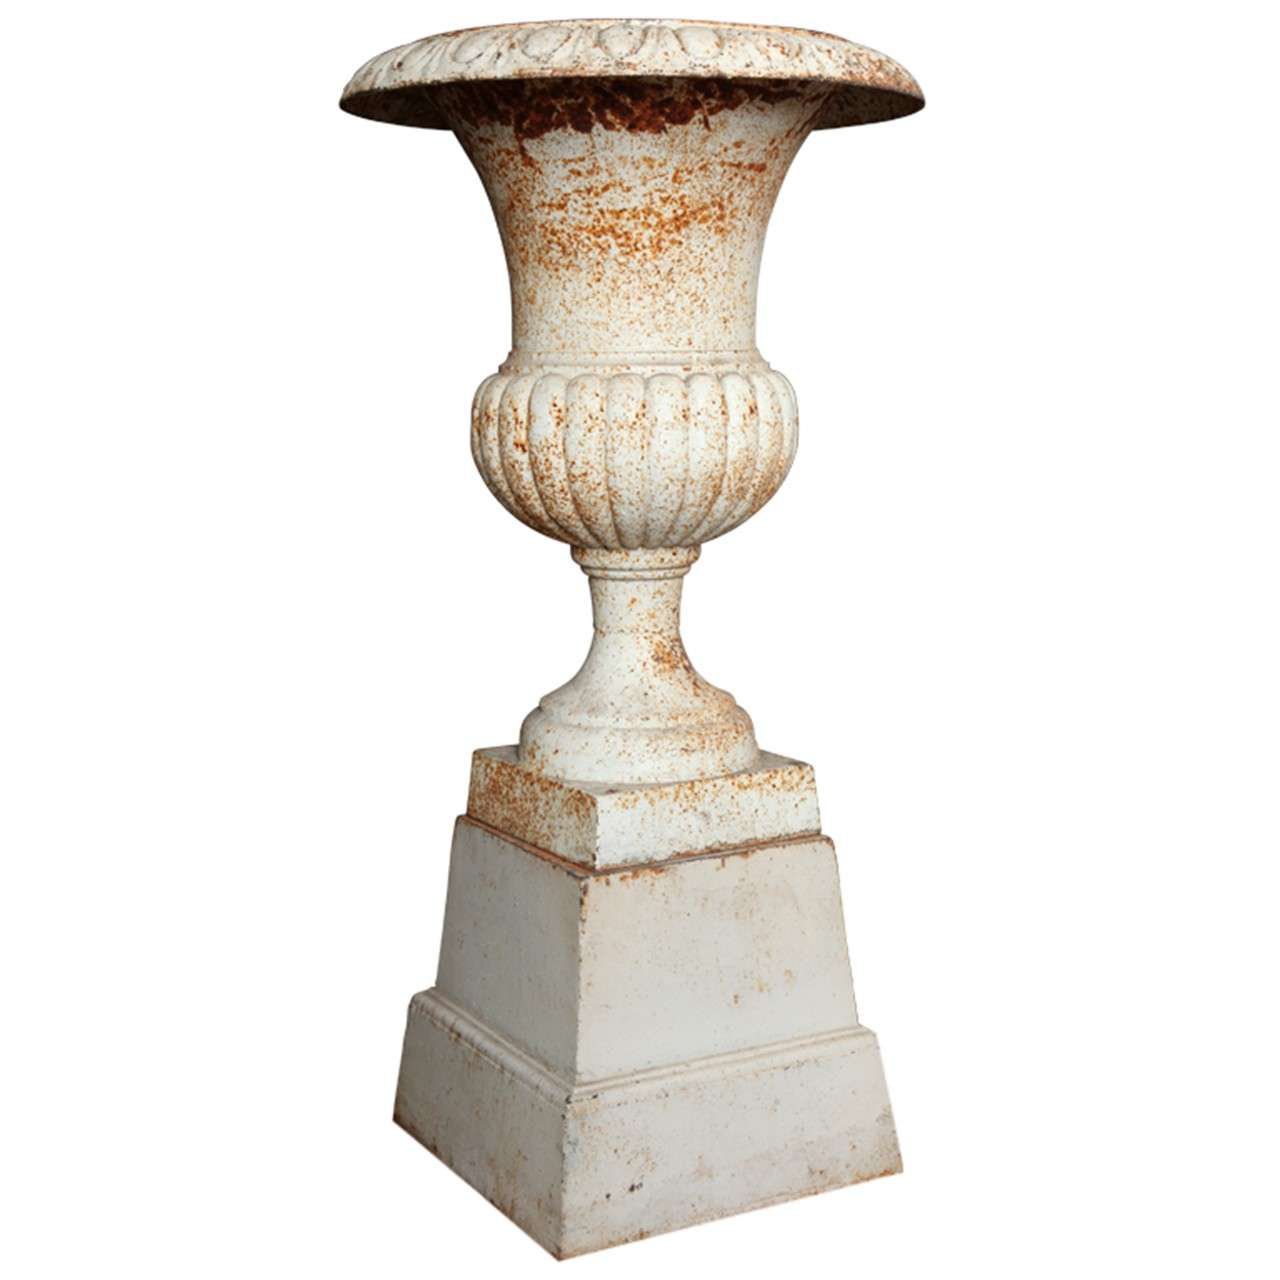 Antique Neoclassical Cast Iron Urn on pedestal c.1800